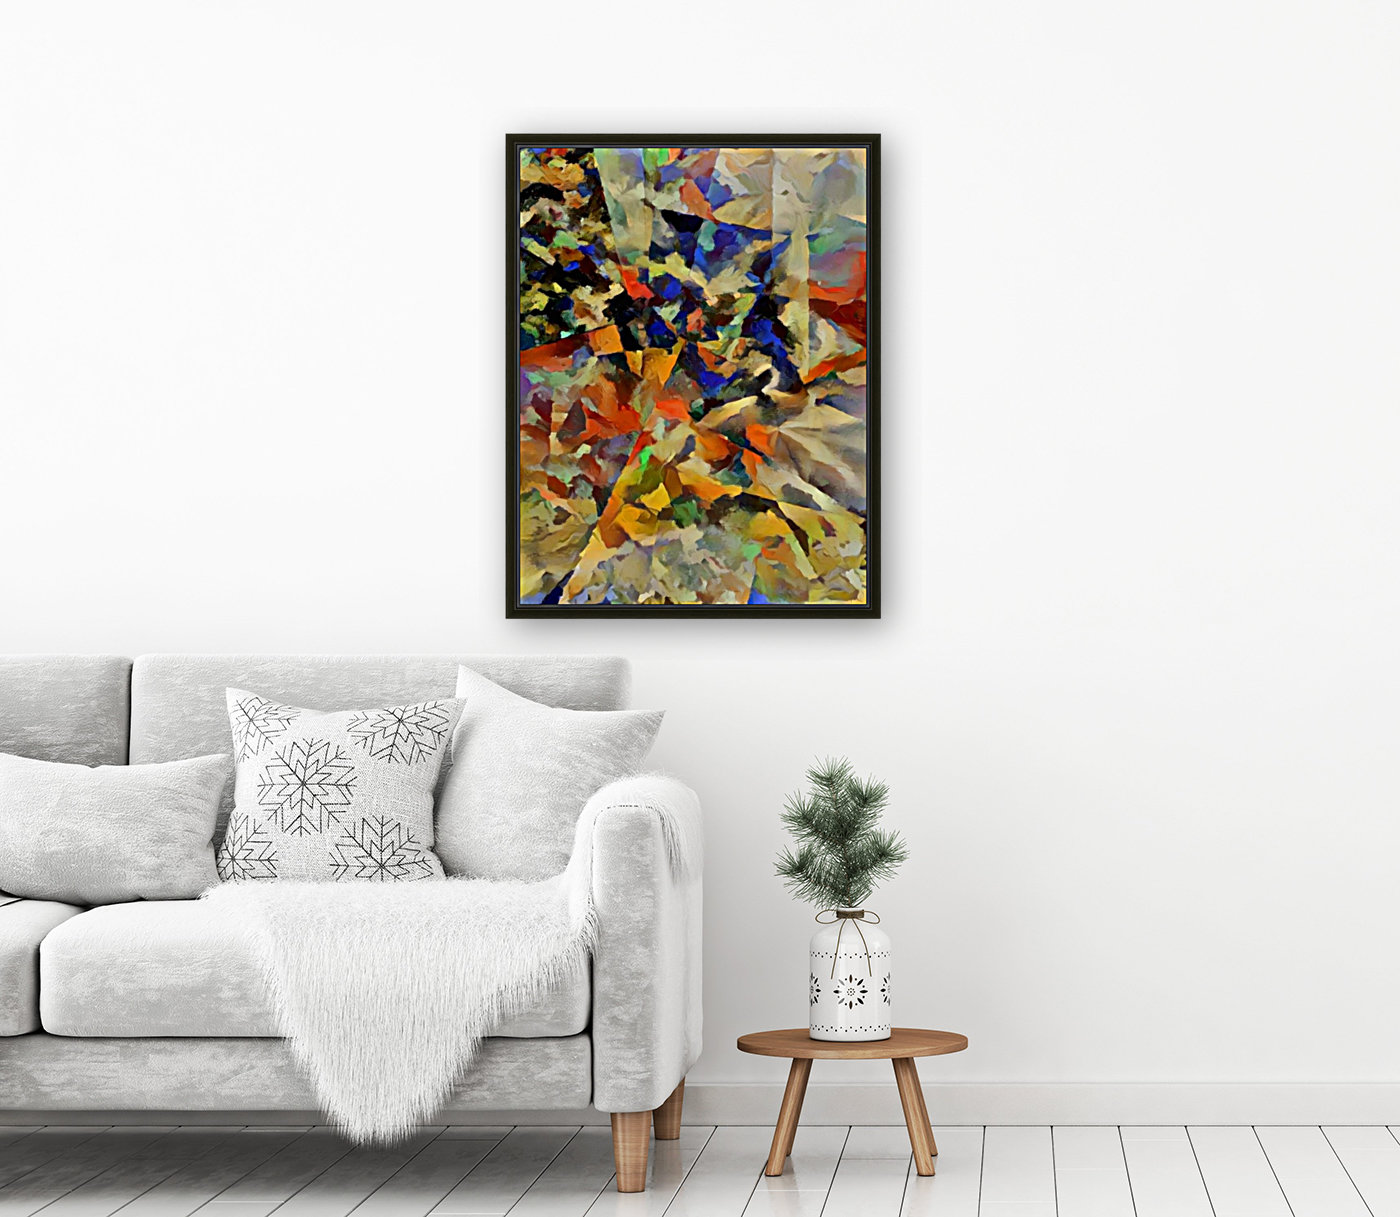 Abstract Painting with Geometric Figures  Art